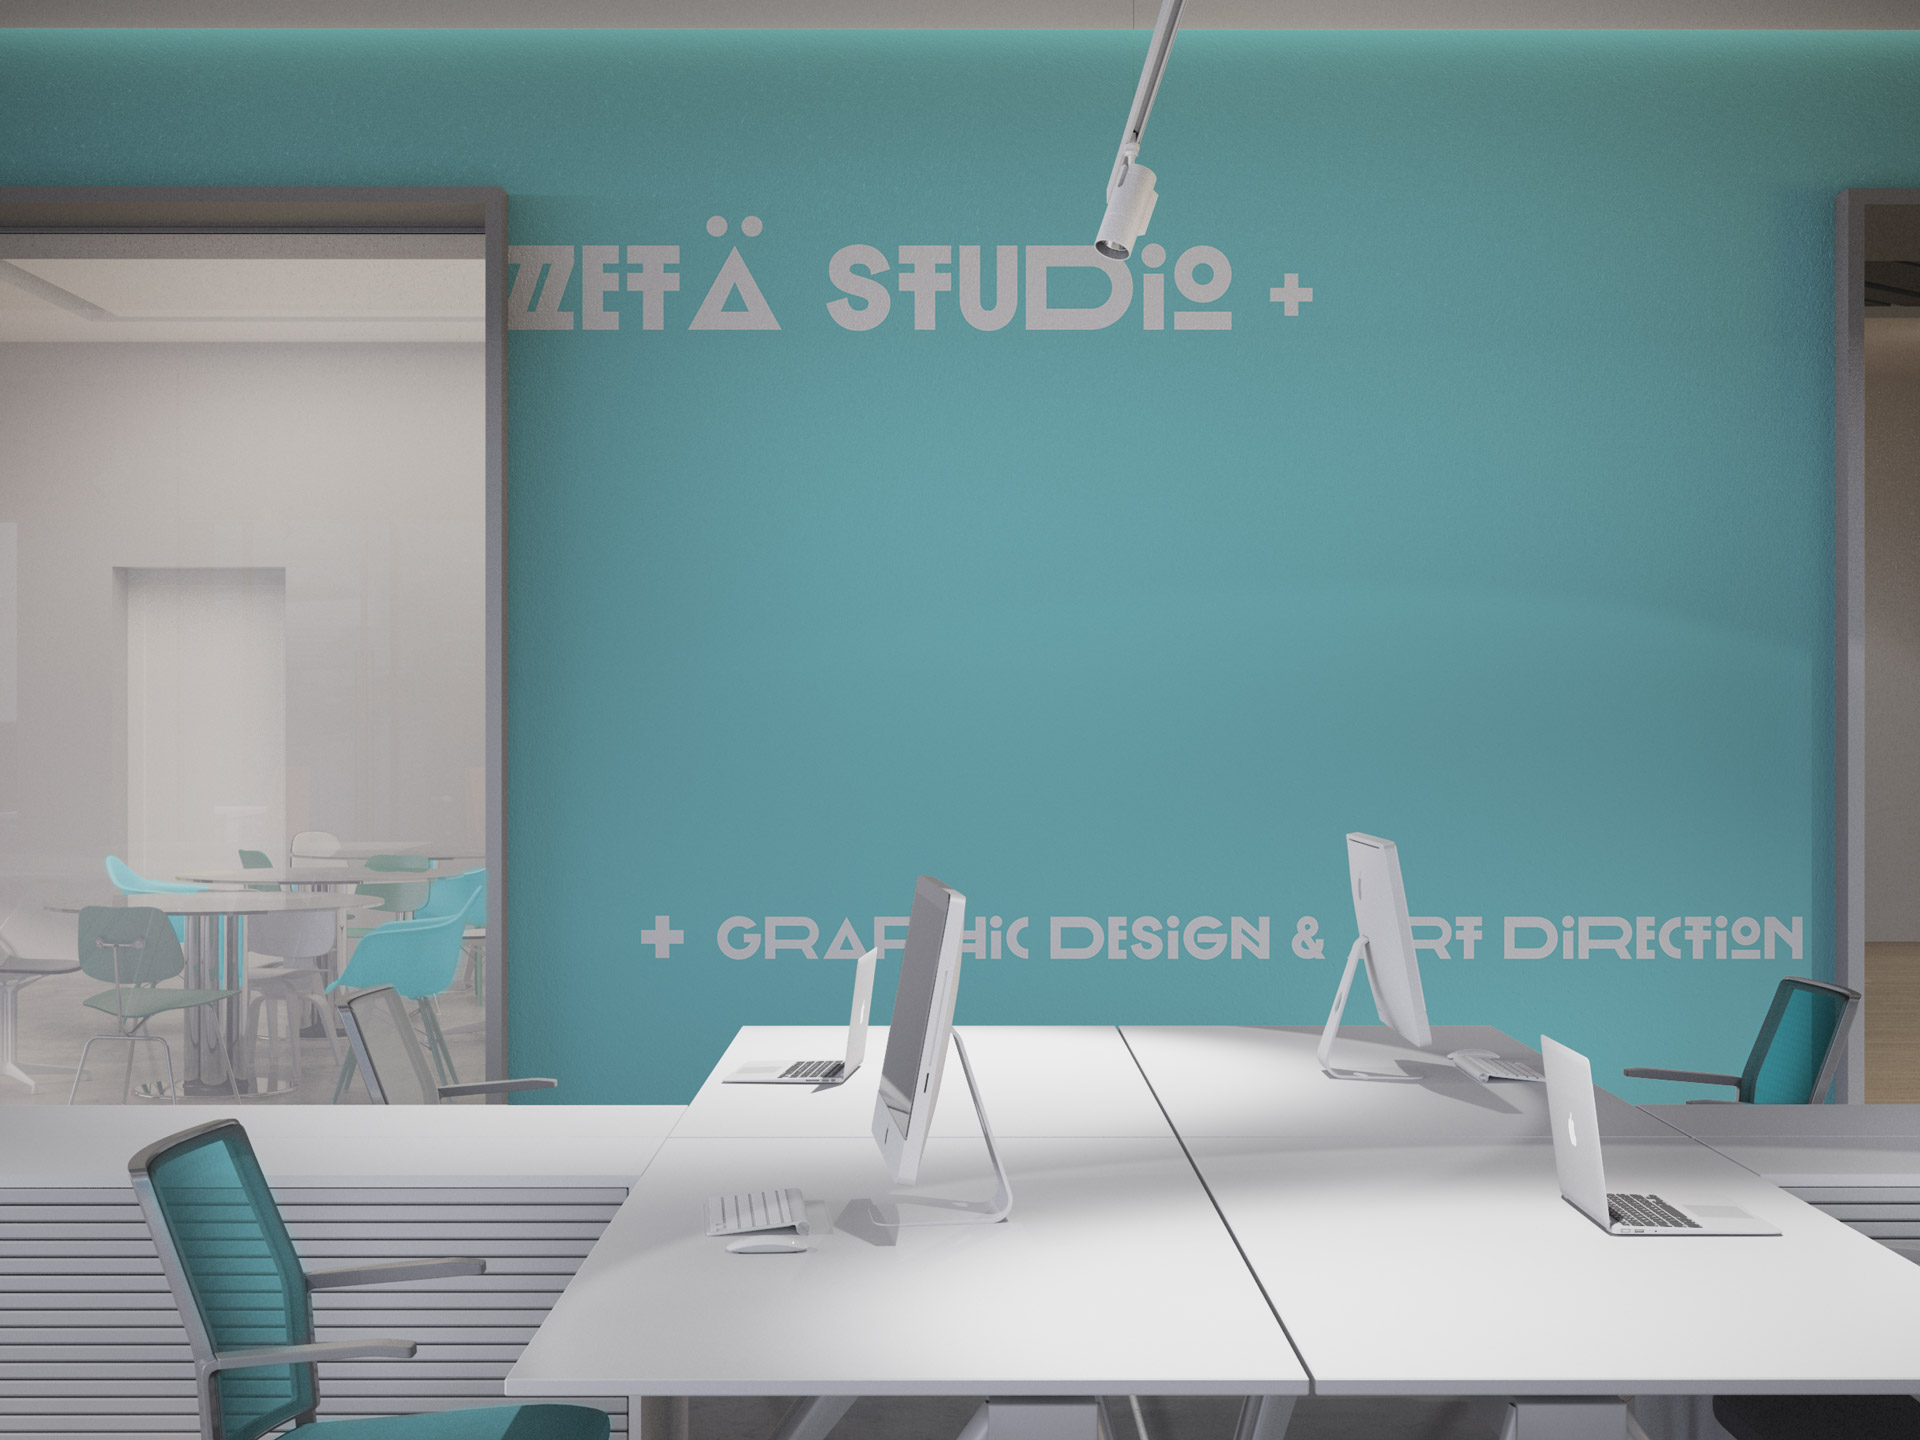 zeta-studio-office-3